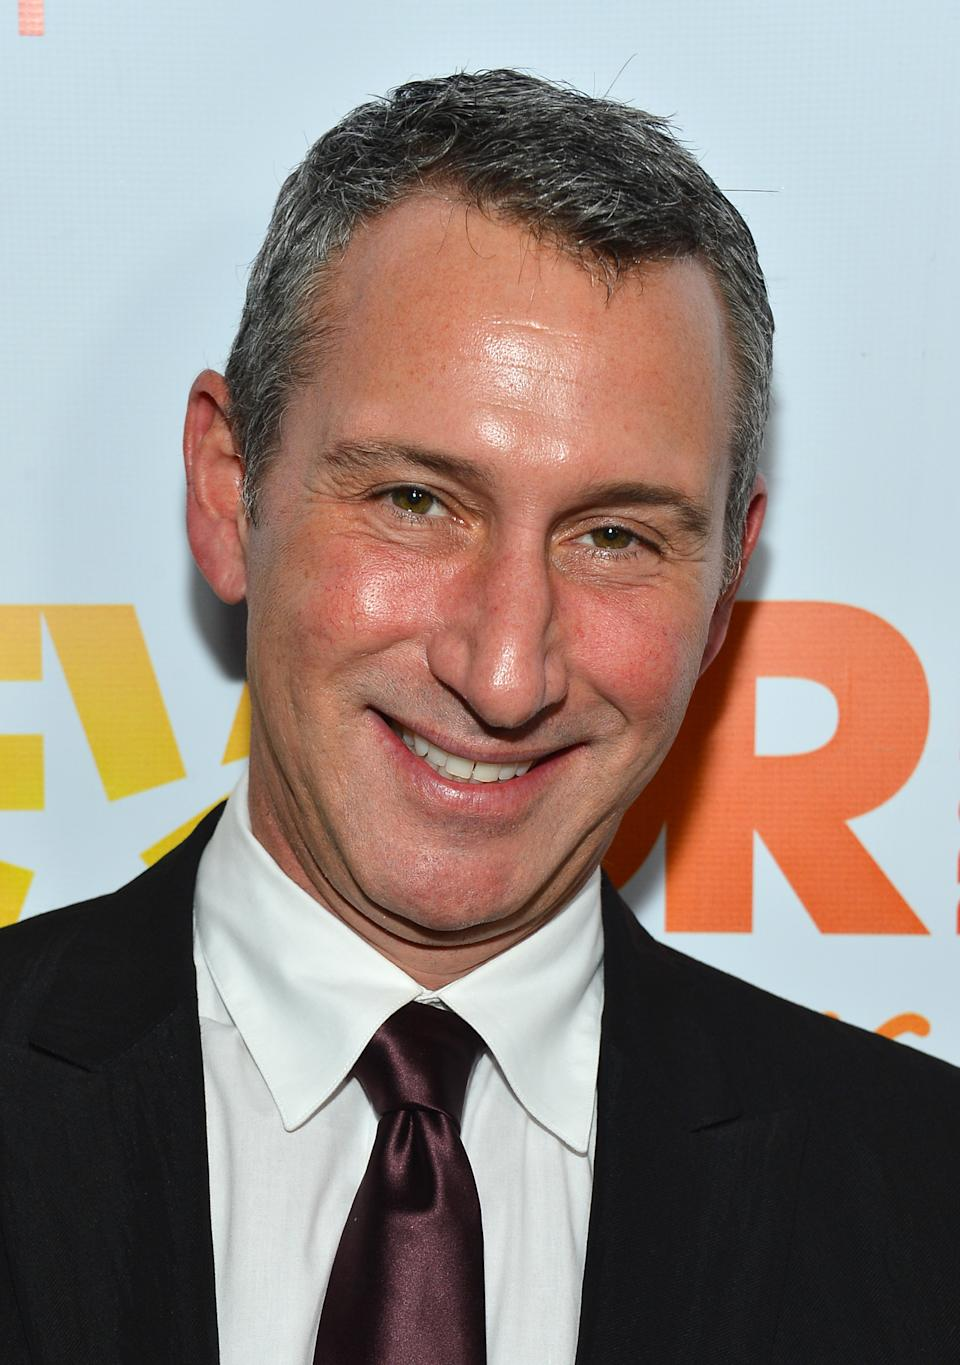 Adam Shankman-Directed 'Nutcracker' Put Into Turnaround at New Line (Exclusive)